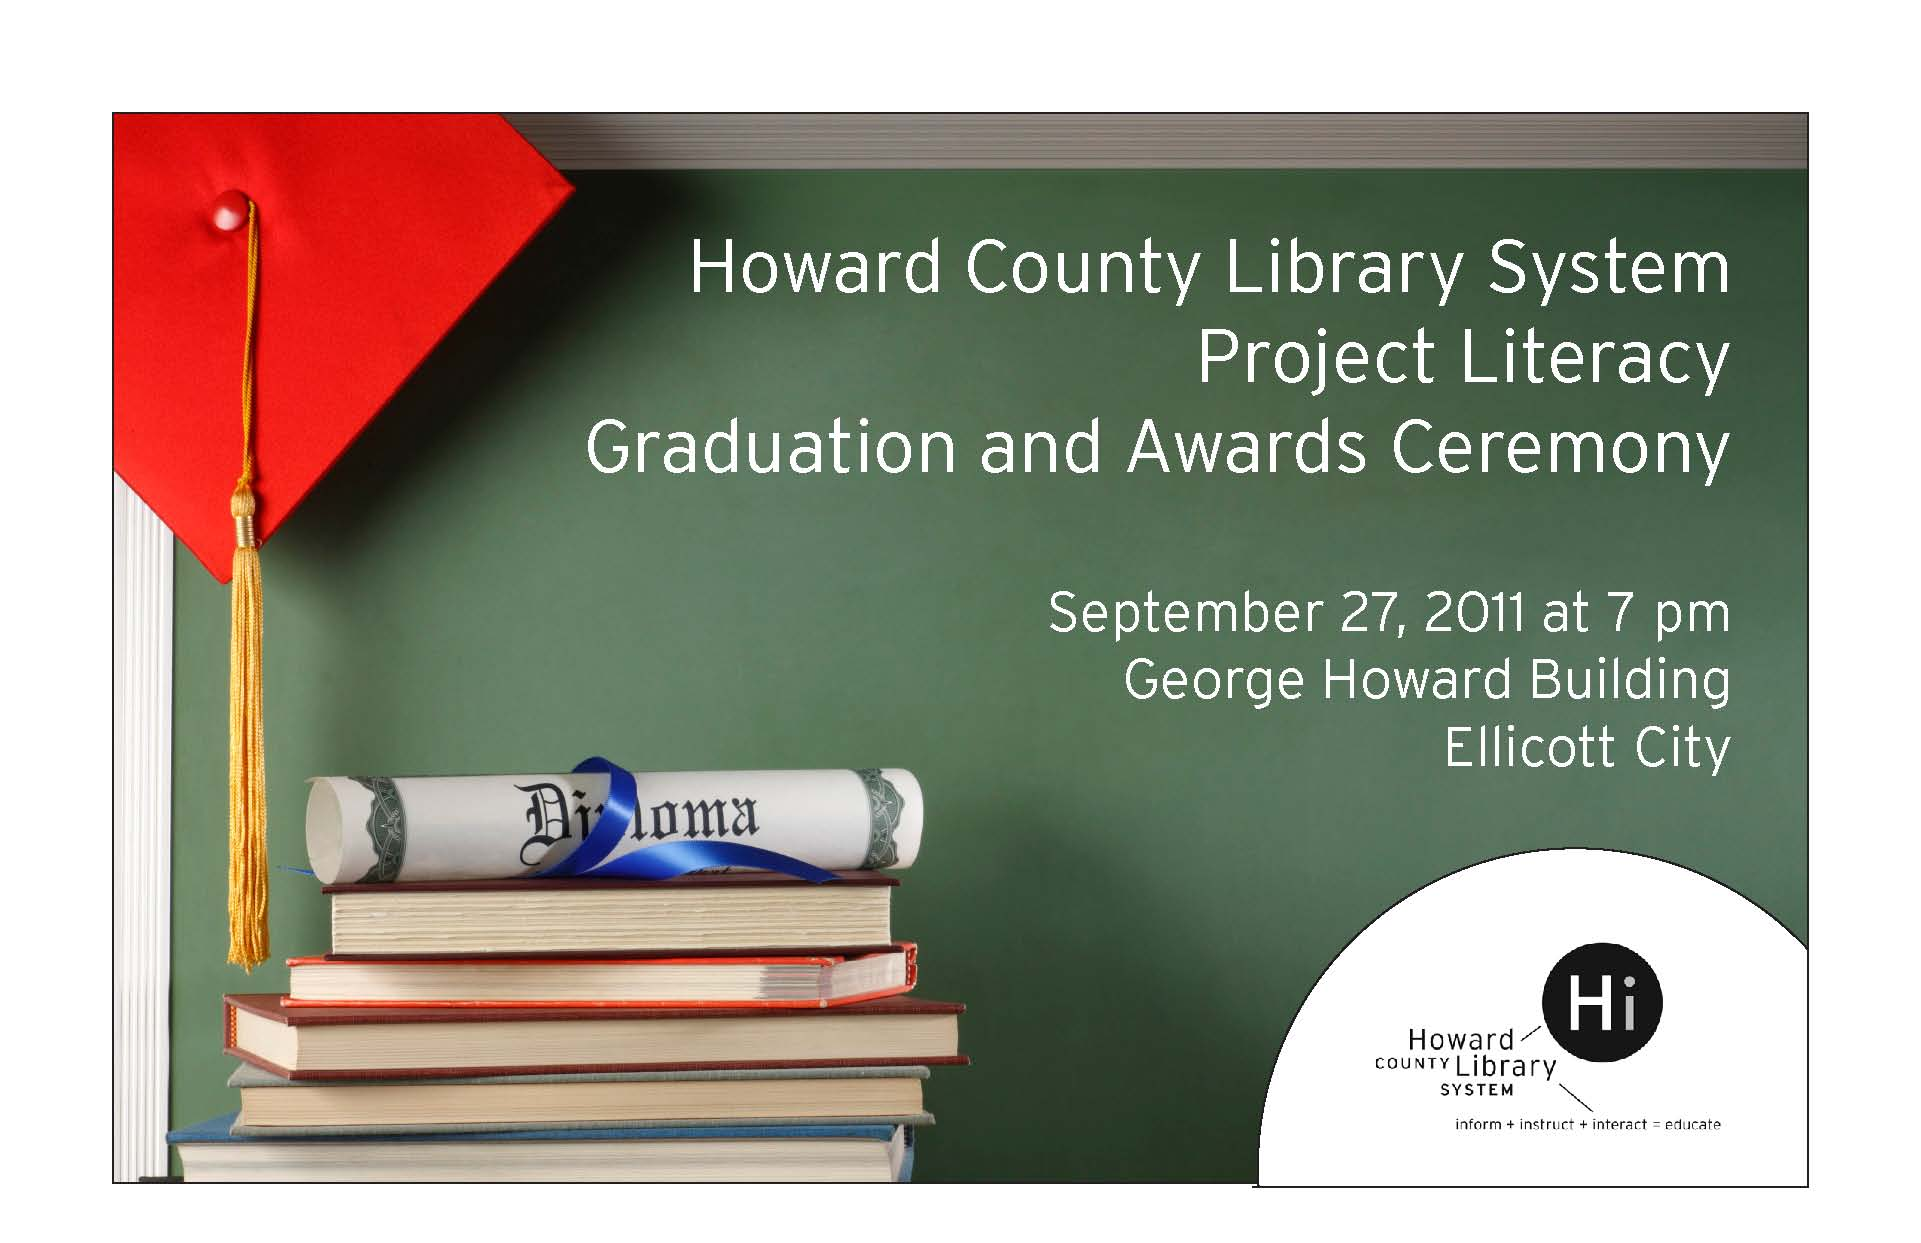 HCLS Project Literacy Graduation and Awards Ceremony Invitation